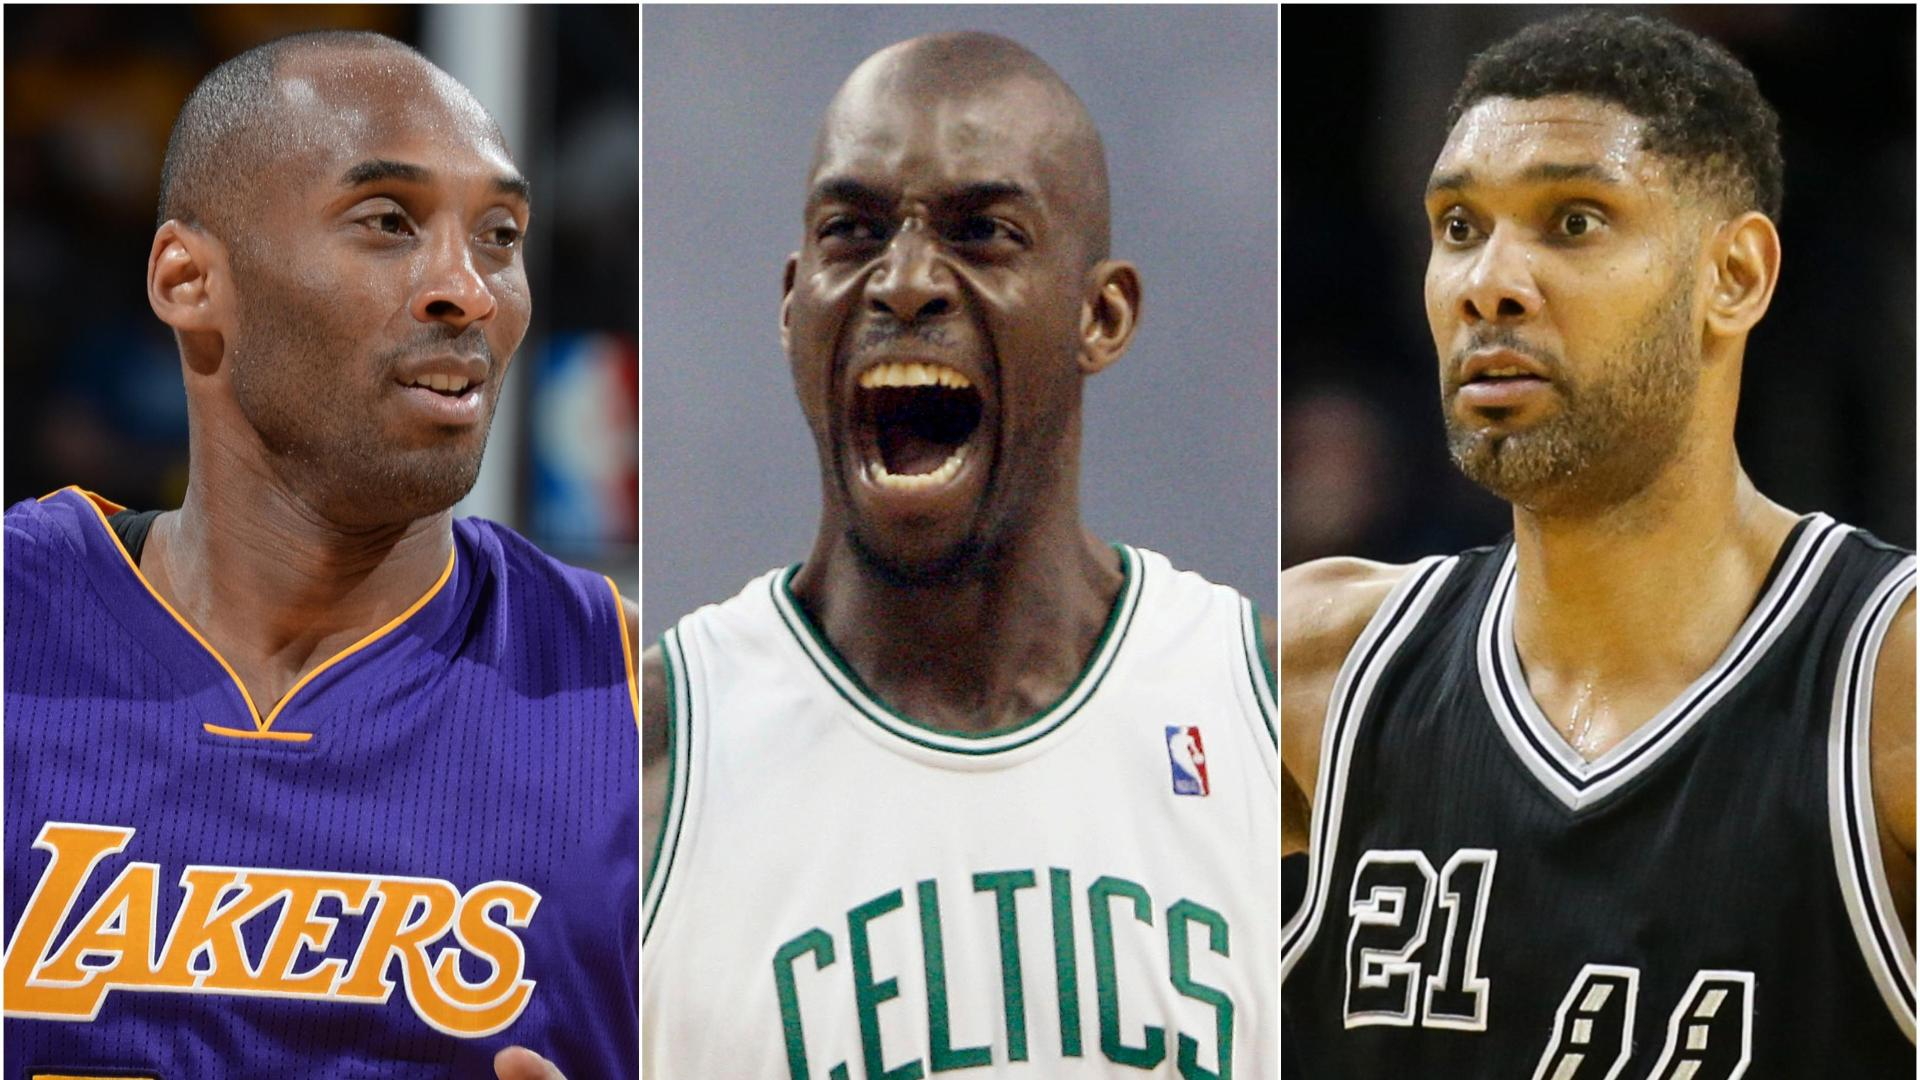 Are Kobe, KG and Duncan the best HOF trio to be inducted together?